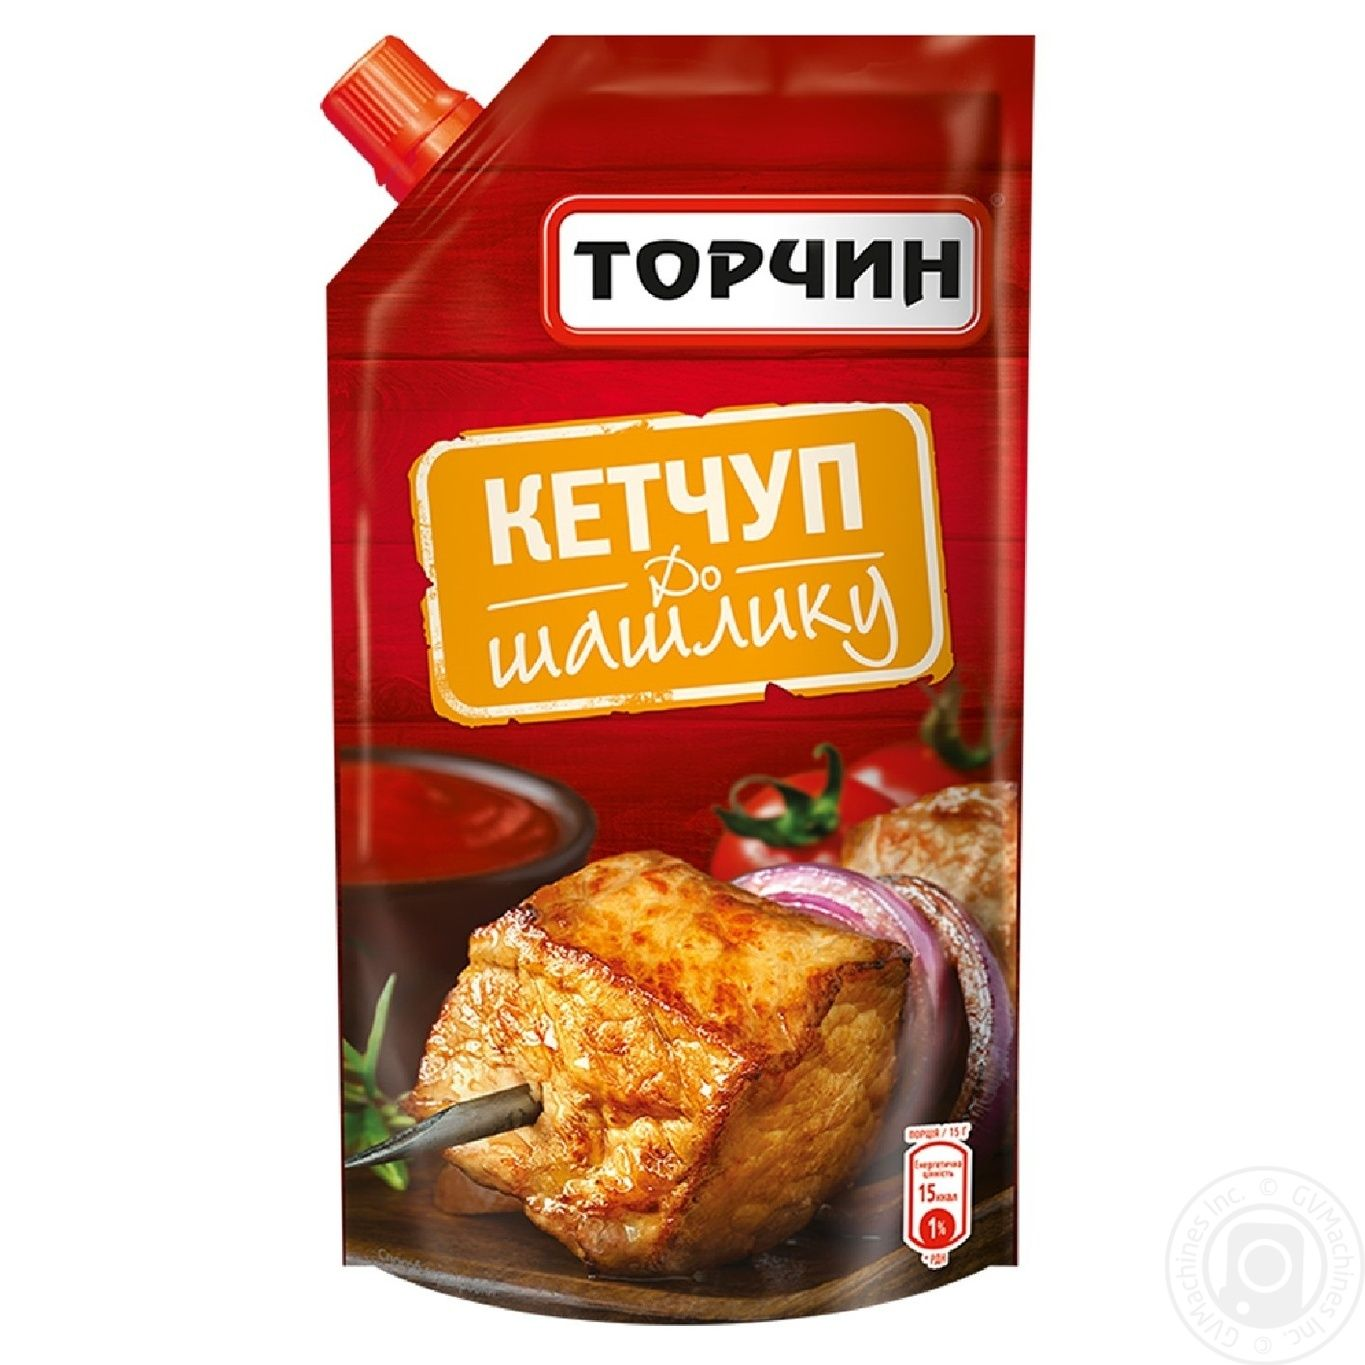 ketchup torchin for kebab 300g doypack ukraine ketchup metro ketchup torchin for kebab 300g doypack ukraine 300 g each